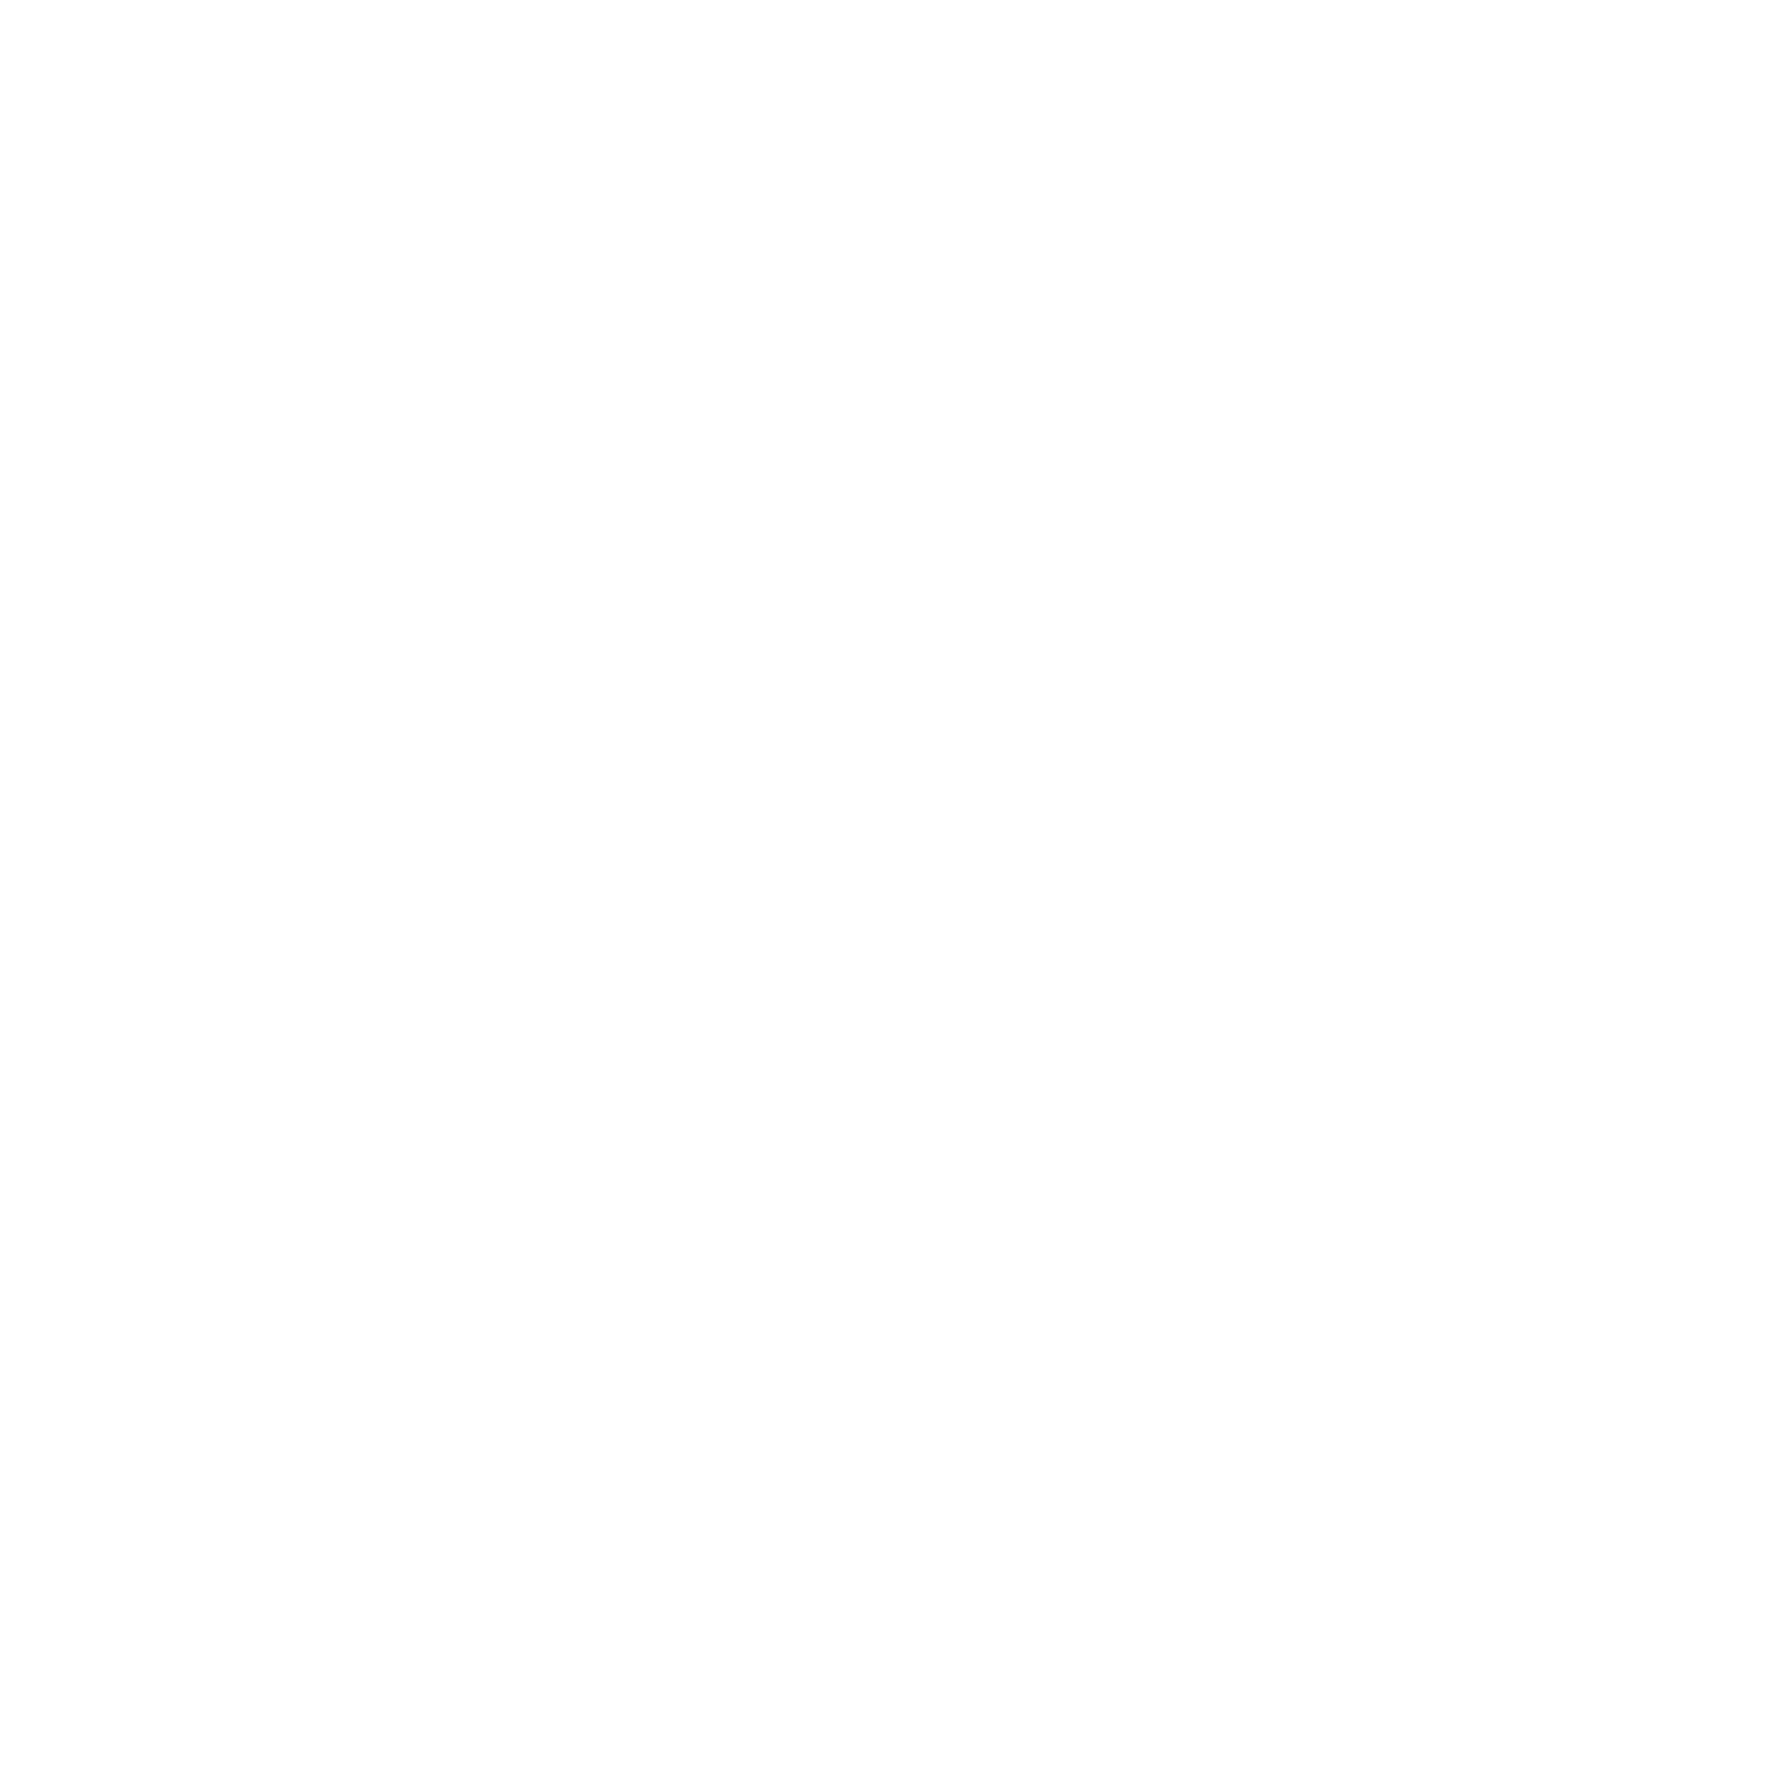 La Sella Golf 30 aniversario